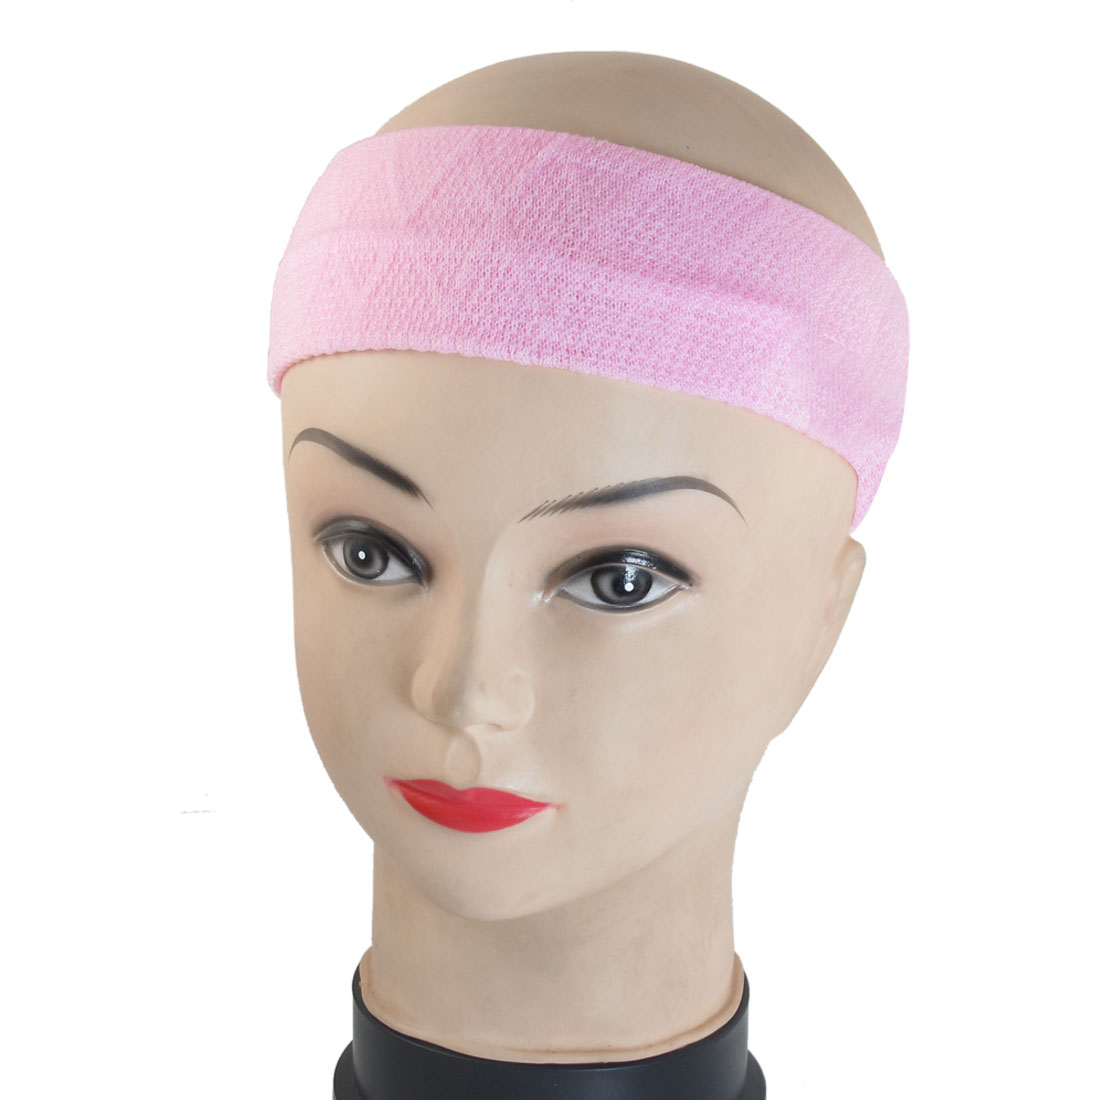 DIY Hairstyle Stretchy Head Band Elastic Headband Hair Holder Pink 2 Pcs